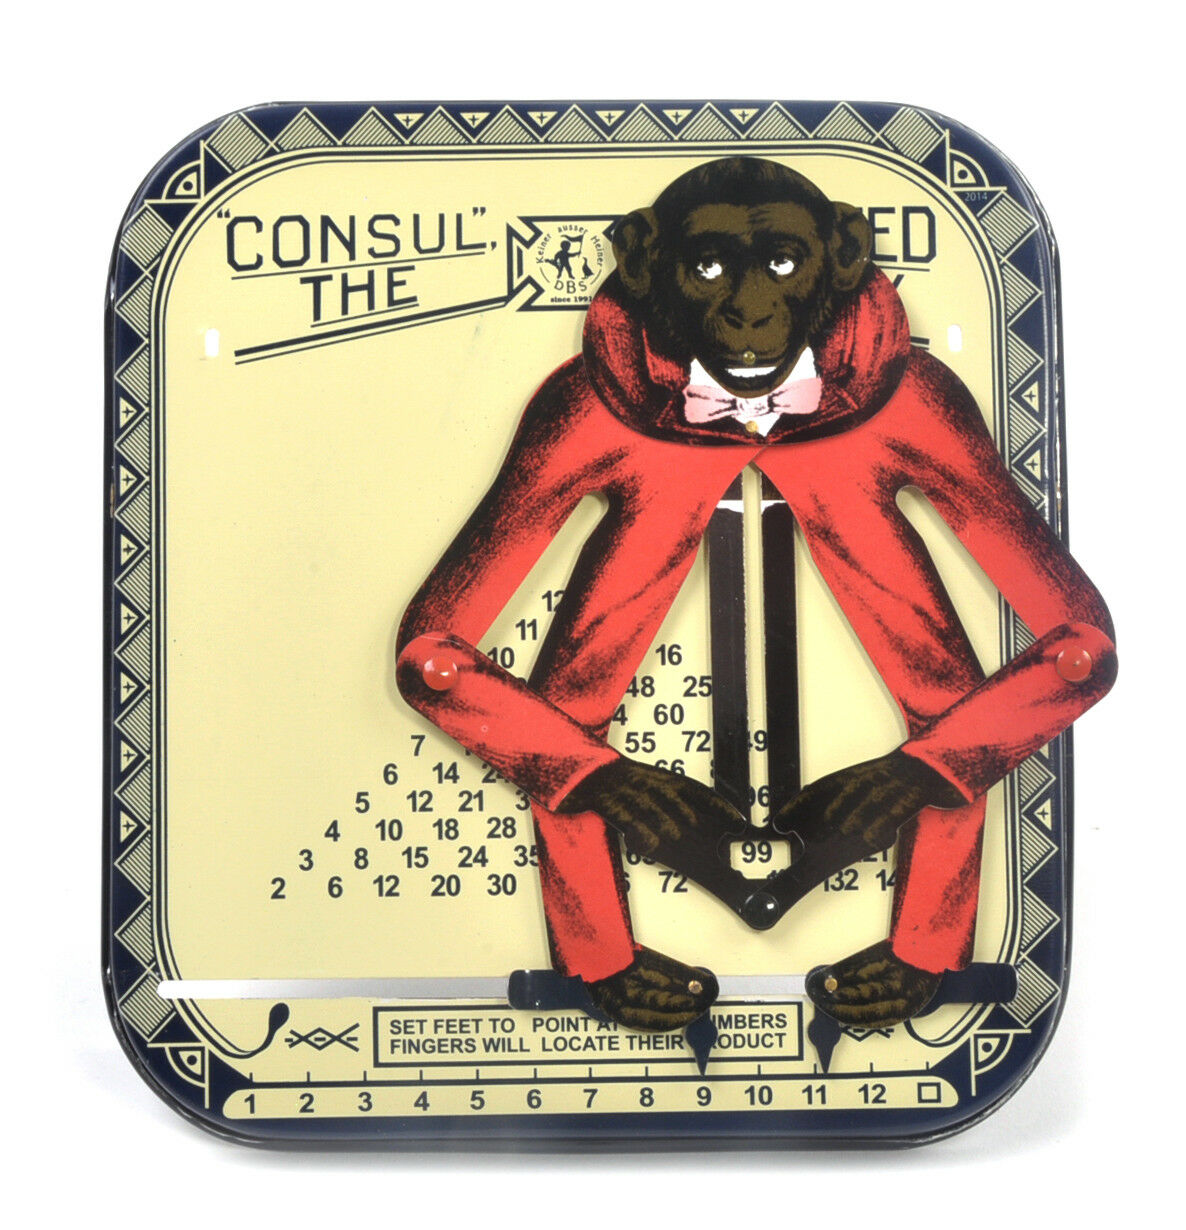 Consult Consult Consult the Educated Monkey - Classic Multiplication Calculator Toy b29a9e